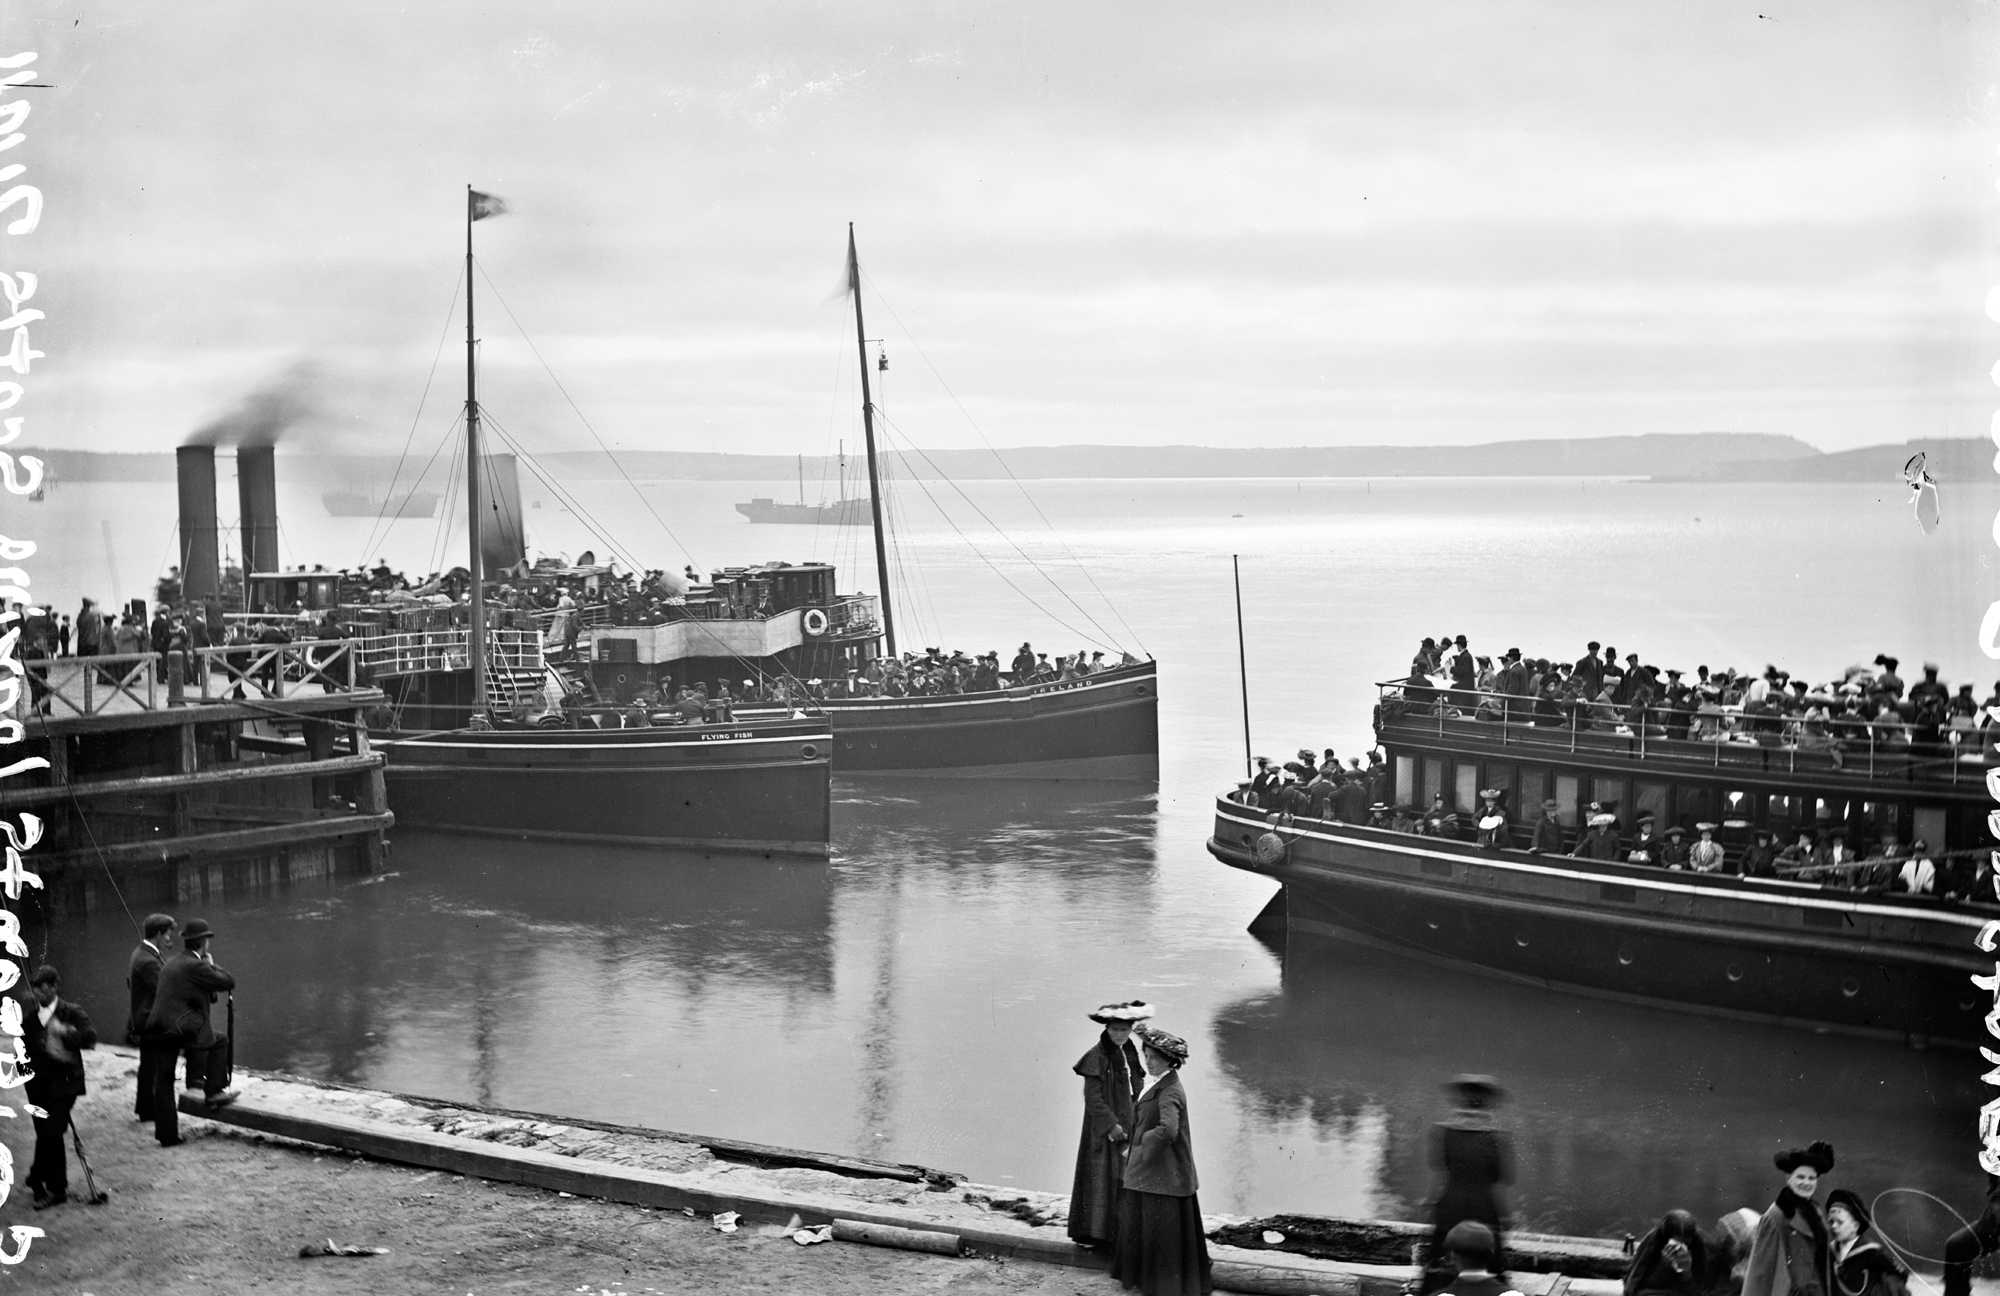 Emigrants leaving. Scotts Quay, Queenstown